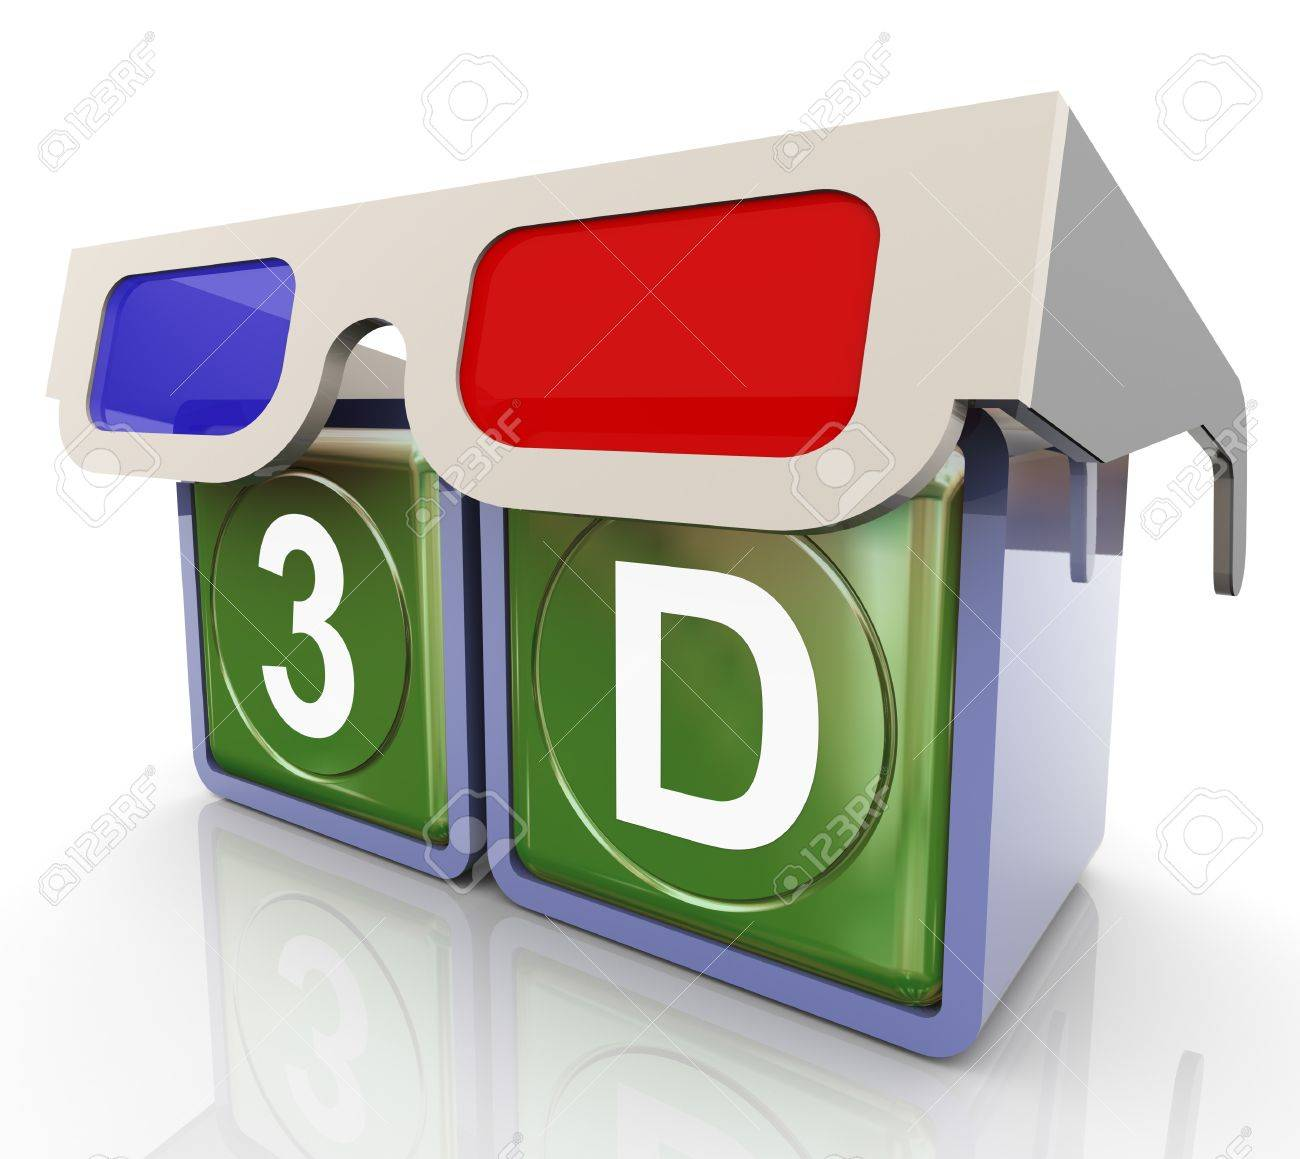 3d render of 3d glass with 3d text box Stock Photo - 11074193